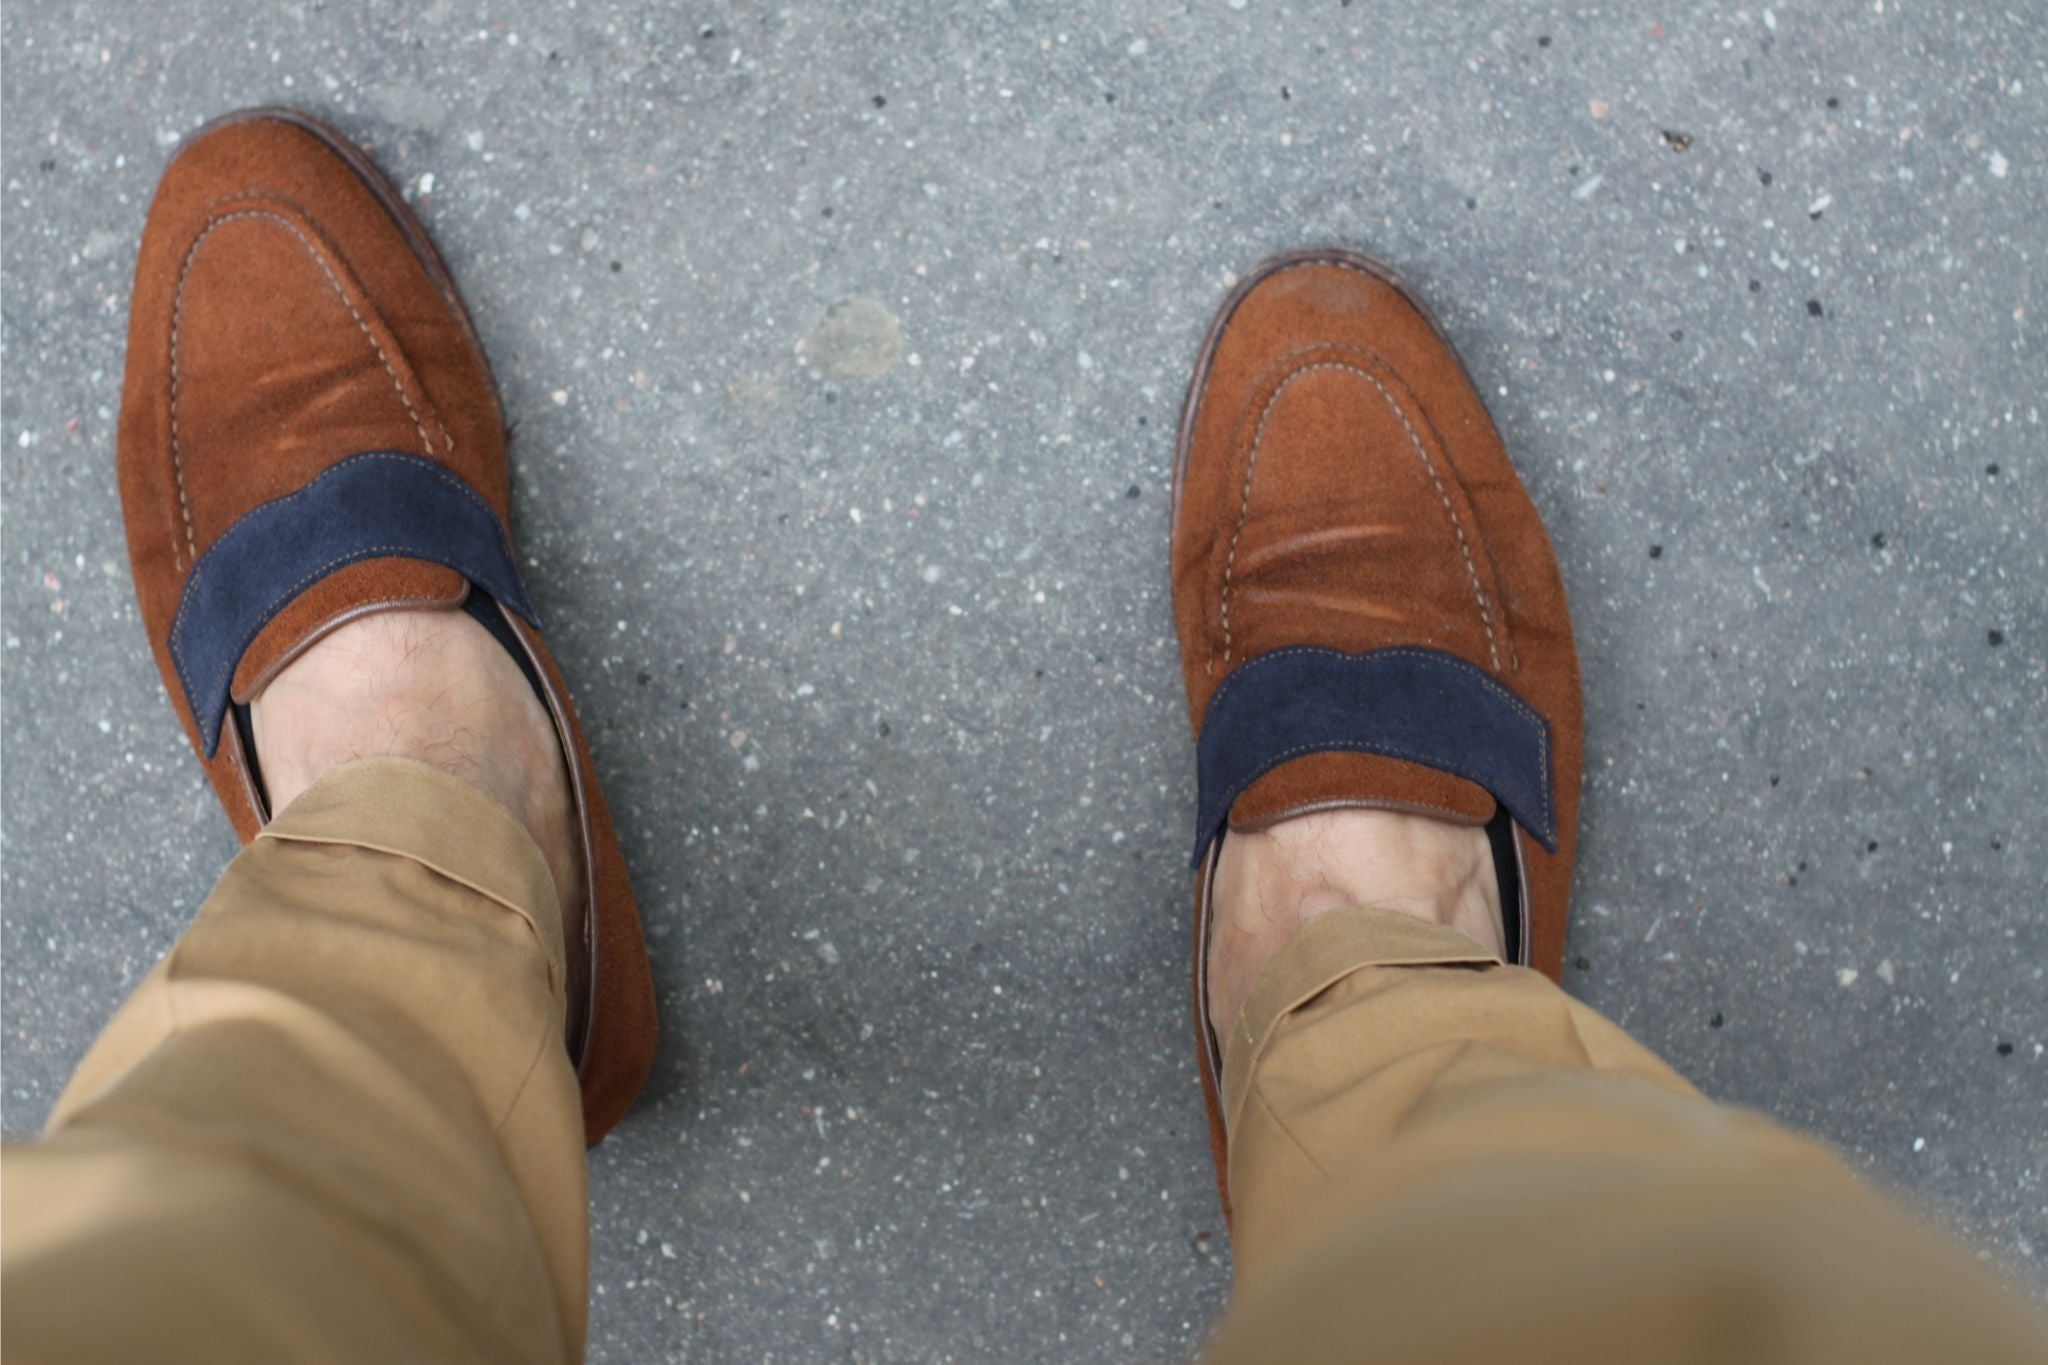 Christian Kimber suede loafers with cuffed cotton slacks